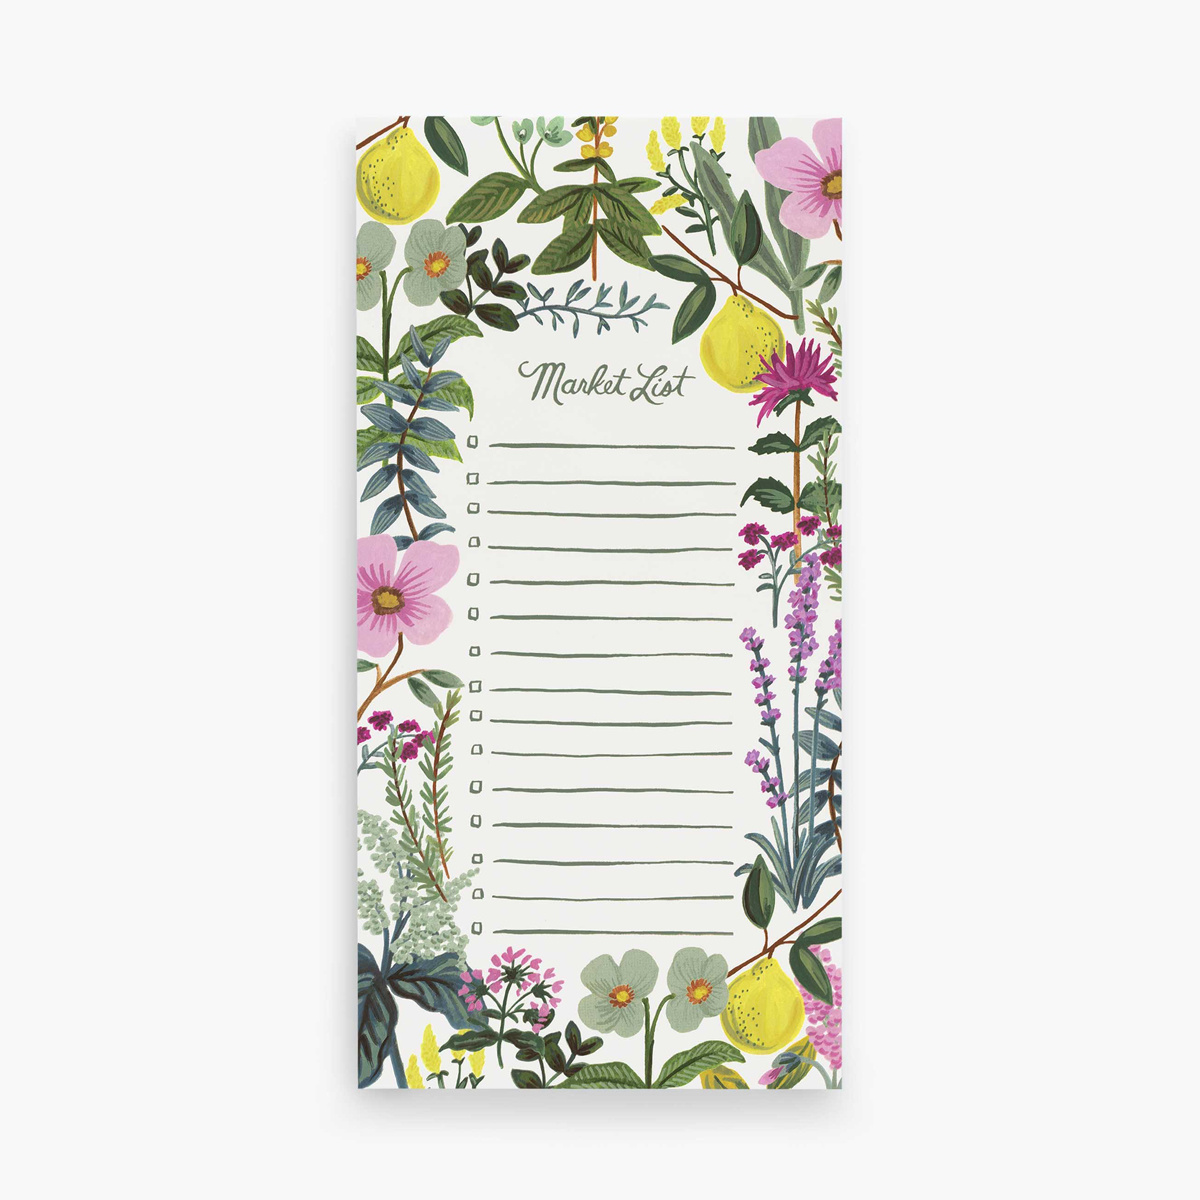 Rifle Paper Co Herb Garden Market List Pad